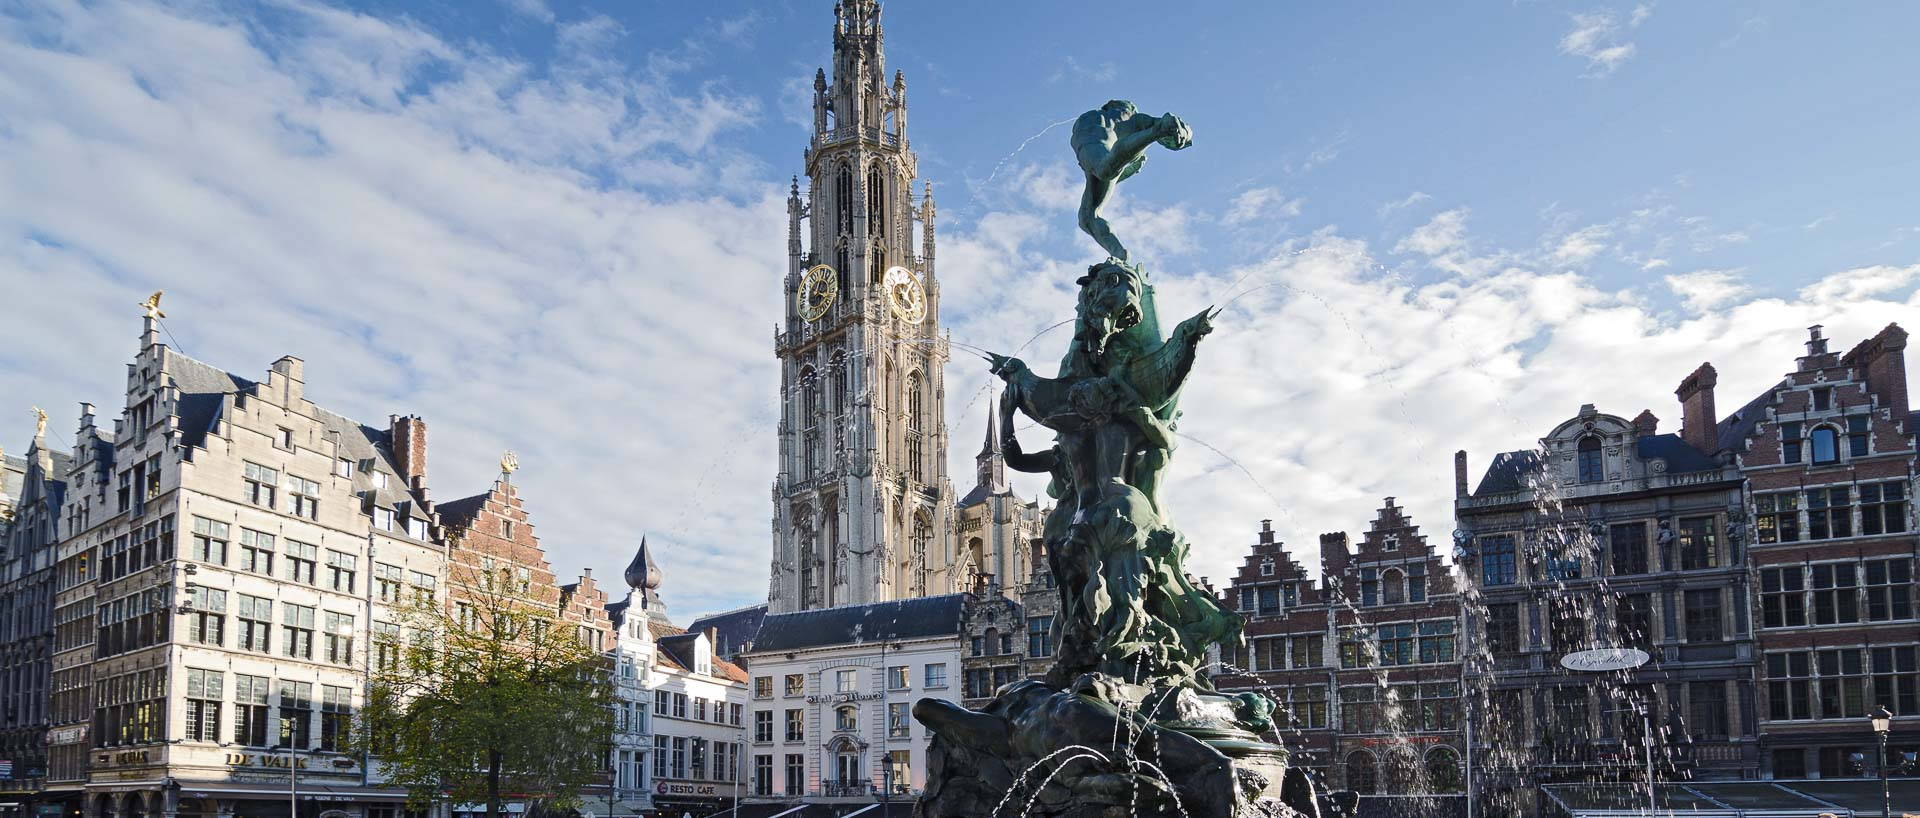 Square in Antwerp